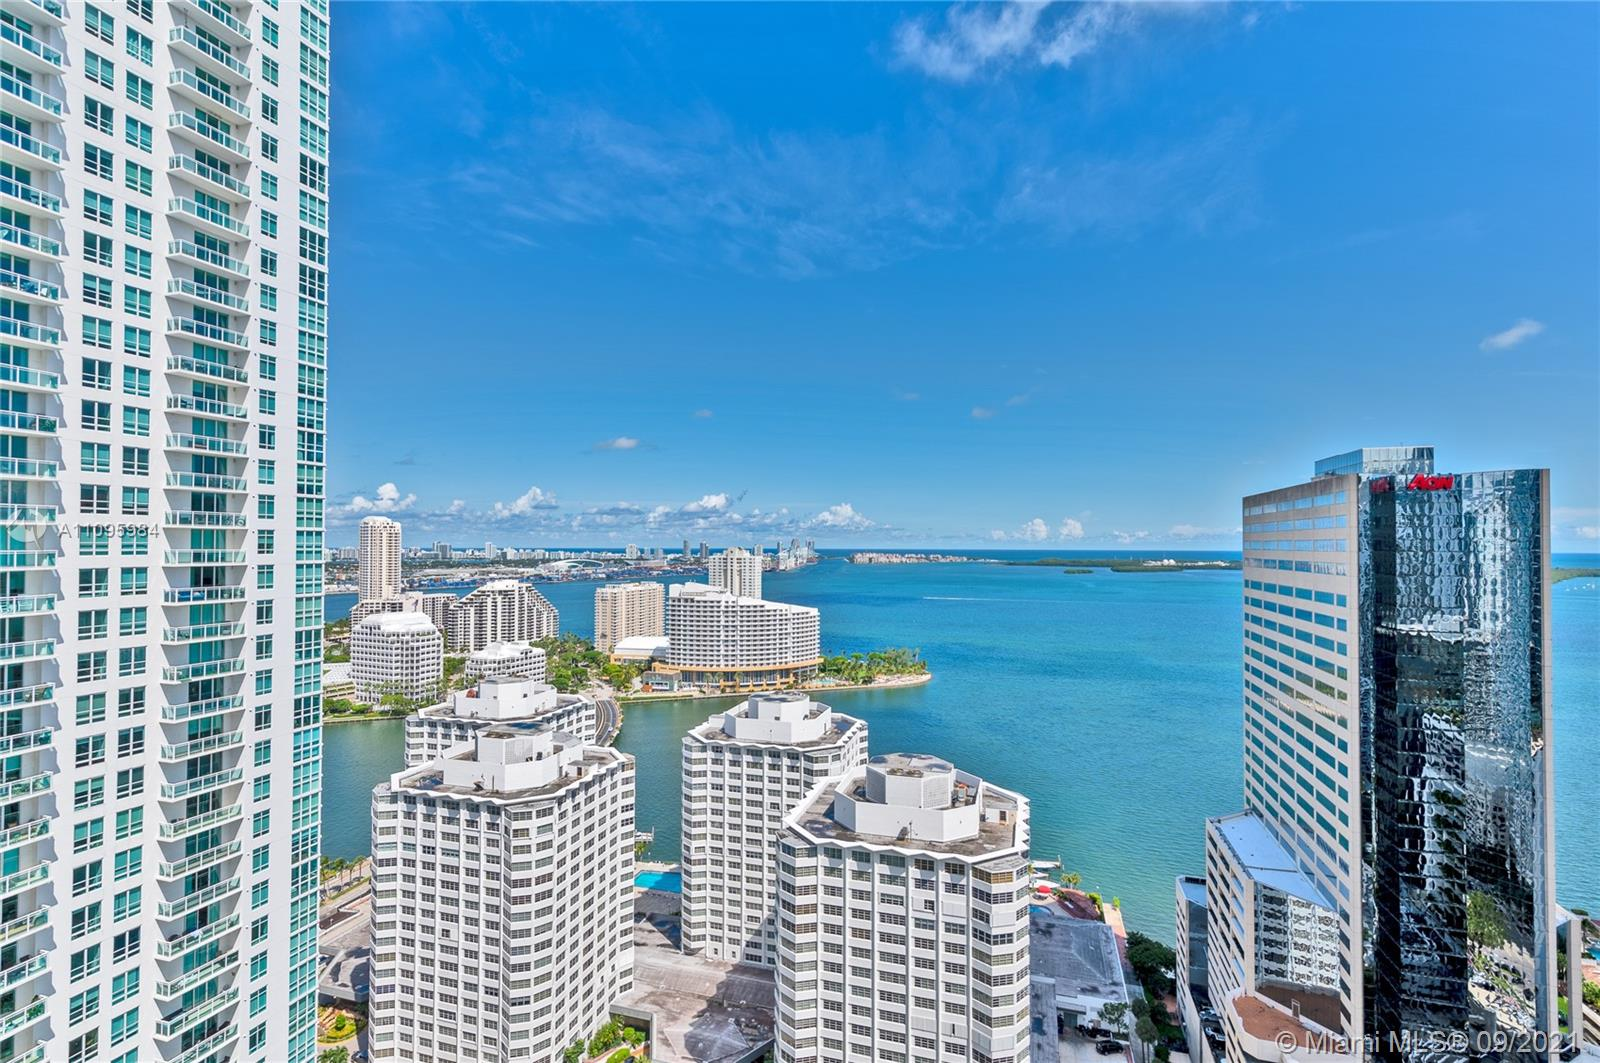 AMAZING UNIT WITH THE BEST VIEWS IN THE BUILDING. 1BD/1BA, PORCELAIN FLOORS, GRANITE COUNTERTOPS, WOOD STYLE CABINETS, STAINLESS STEEL APPLIANCESFULL.  AMENITIES INCLUDE RESORT STYLE, POOL AND JACUZZI, SOCIAL ROOM, CINEMA ROOM, STATE OF ART FITNESS CENTER. VALET SERVICE. CLOSE TO MARY BRICKELL VILLAGE AND ALL RESTAURANTS.